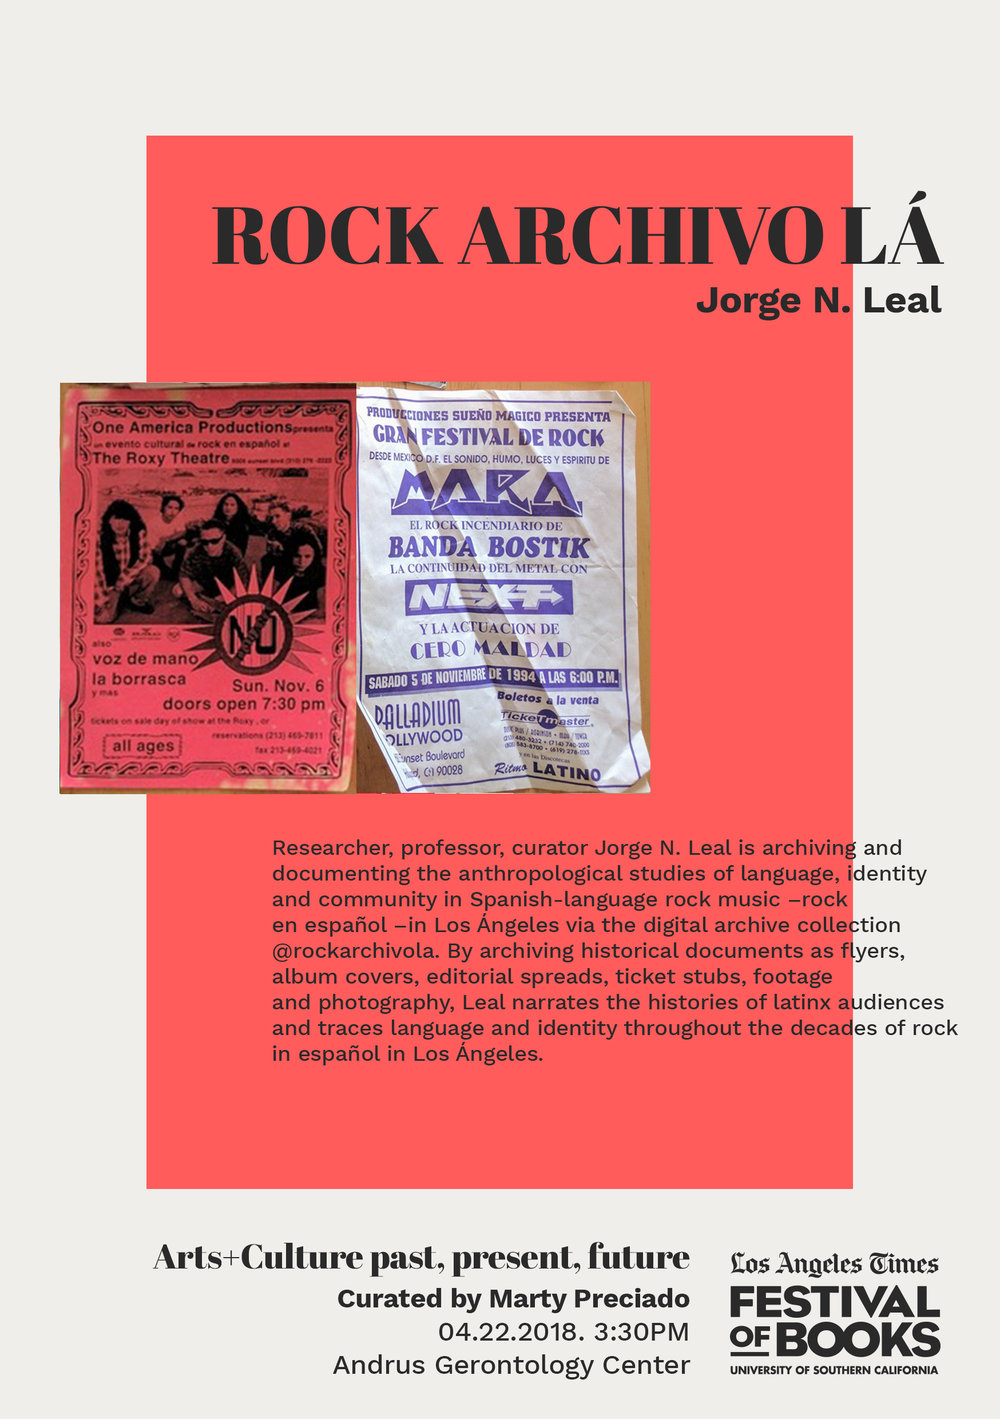 ROCK ARCHIVO LÁBY JORGE N. LEAL - Researcher, professor, curator Jorge N. Leal is archiving and documenting the anthropological studies of language, identity and community in Spanish-language rock music –rock en español –in Los Ángeles via the digital archive collection @rockarchivola. By archiving historical documents as flyers, album covers, editorial spreads, ticket stubs, footage and photography, Leal narrates the histories of latinx audiences and traces language and identity throughout the decades of rock in español in Los Ángeles.